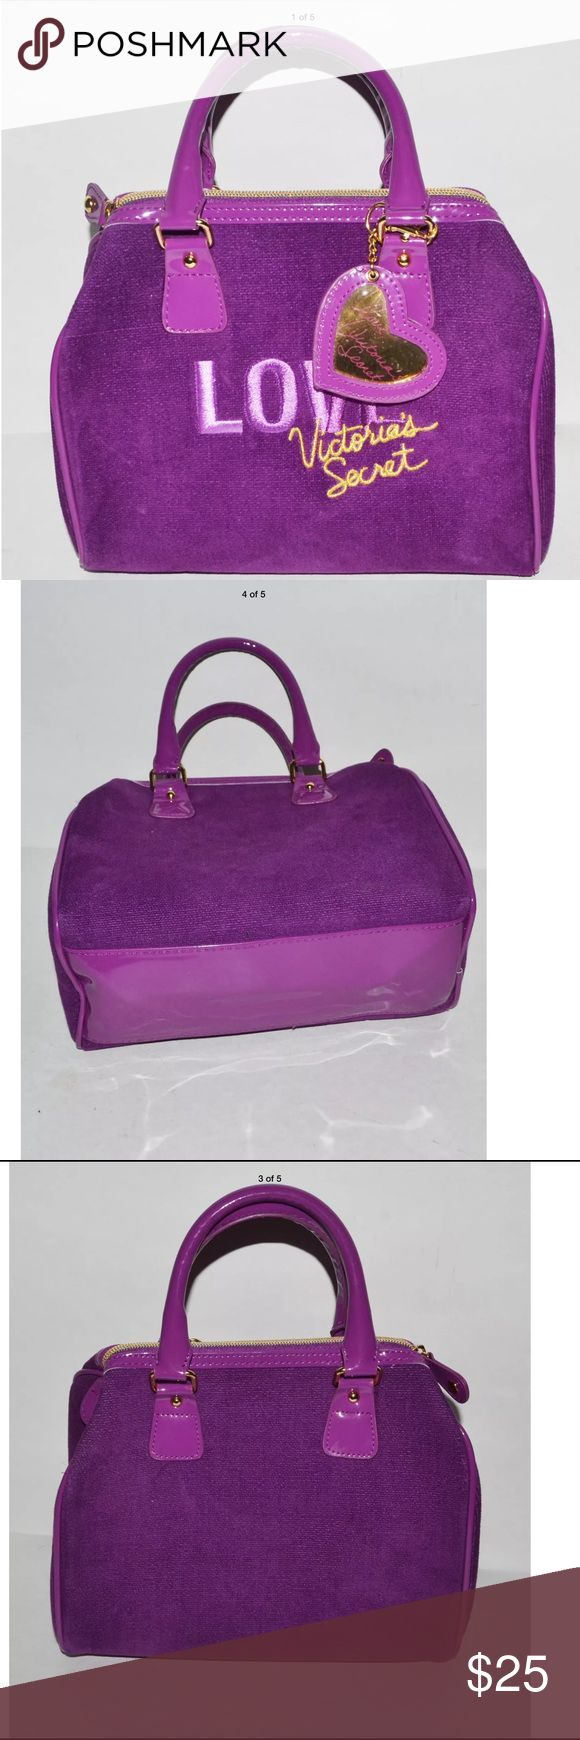 "Victoria's Secret cosmetics Bag Victoria's Secret Embroidered Purple Velvet Love Purse Handbag / measures 9 1/2"" wide x 8"" tall / Very nice Gently Used Condition. Victoria's Secret Bags Cosmetic Bags & Cases"